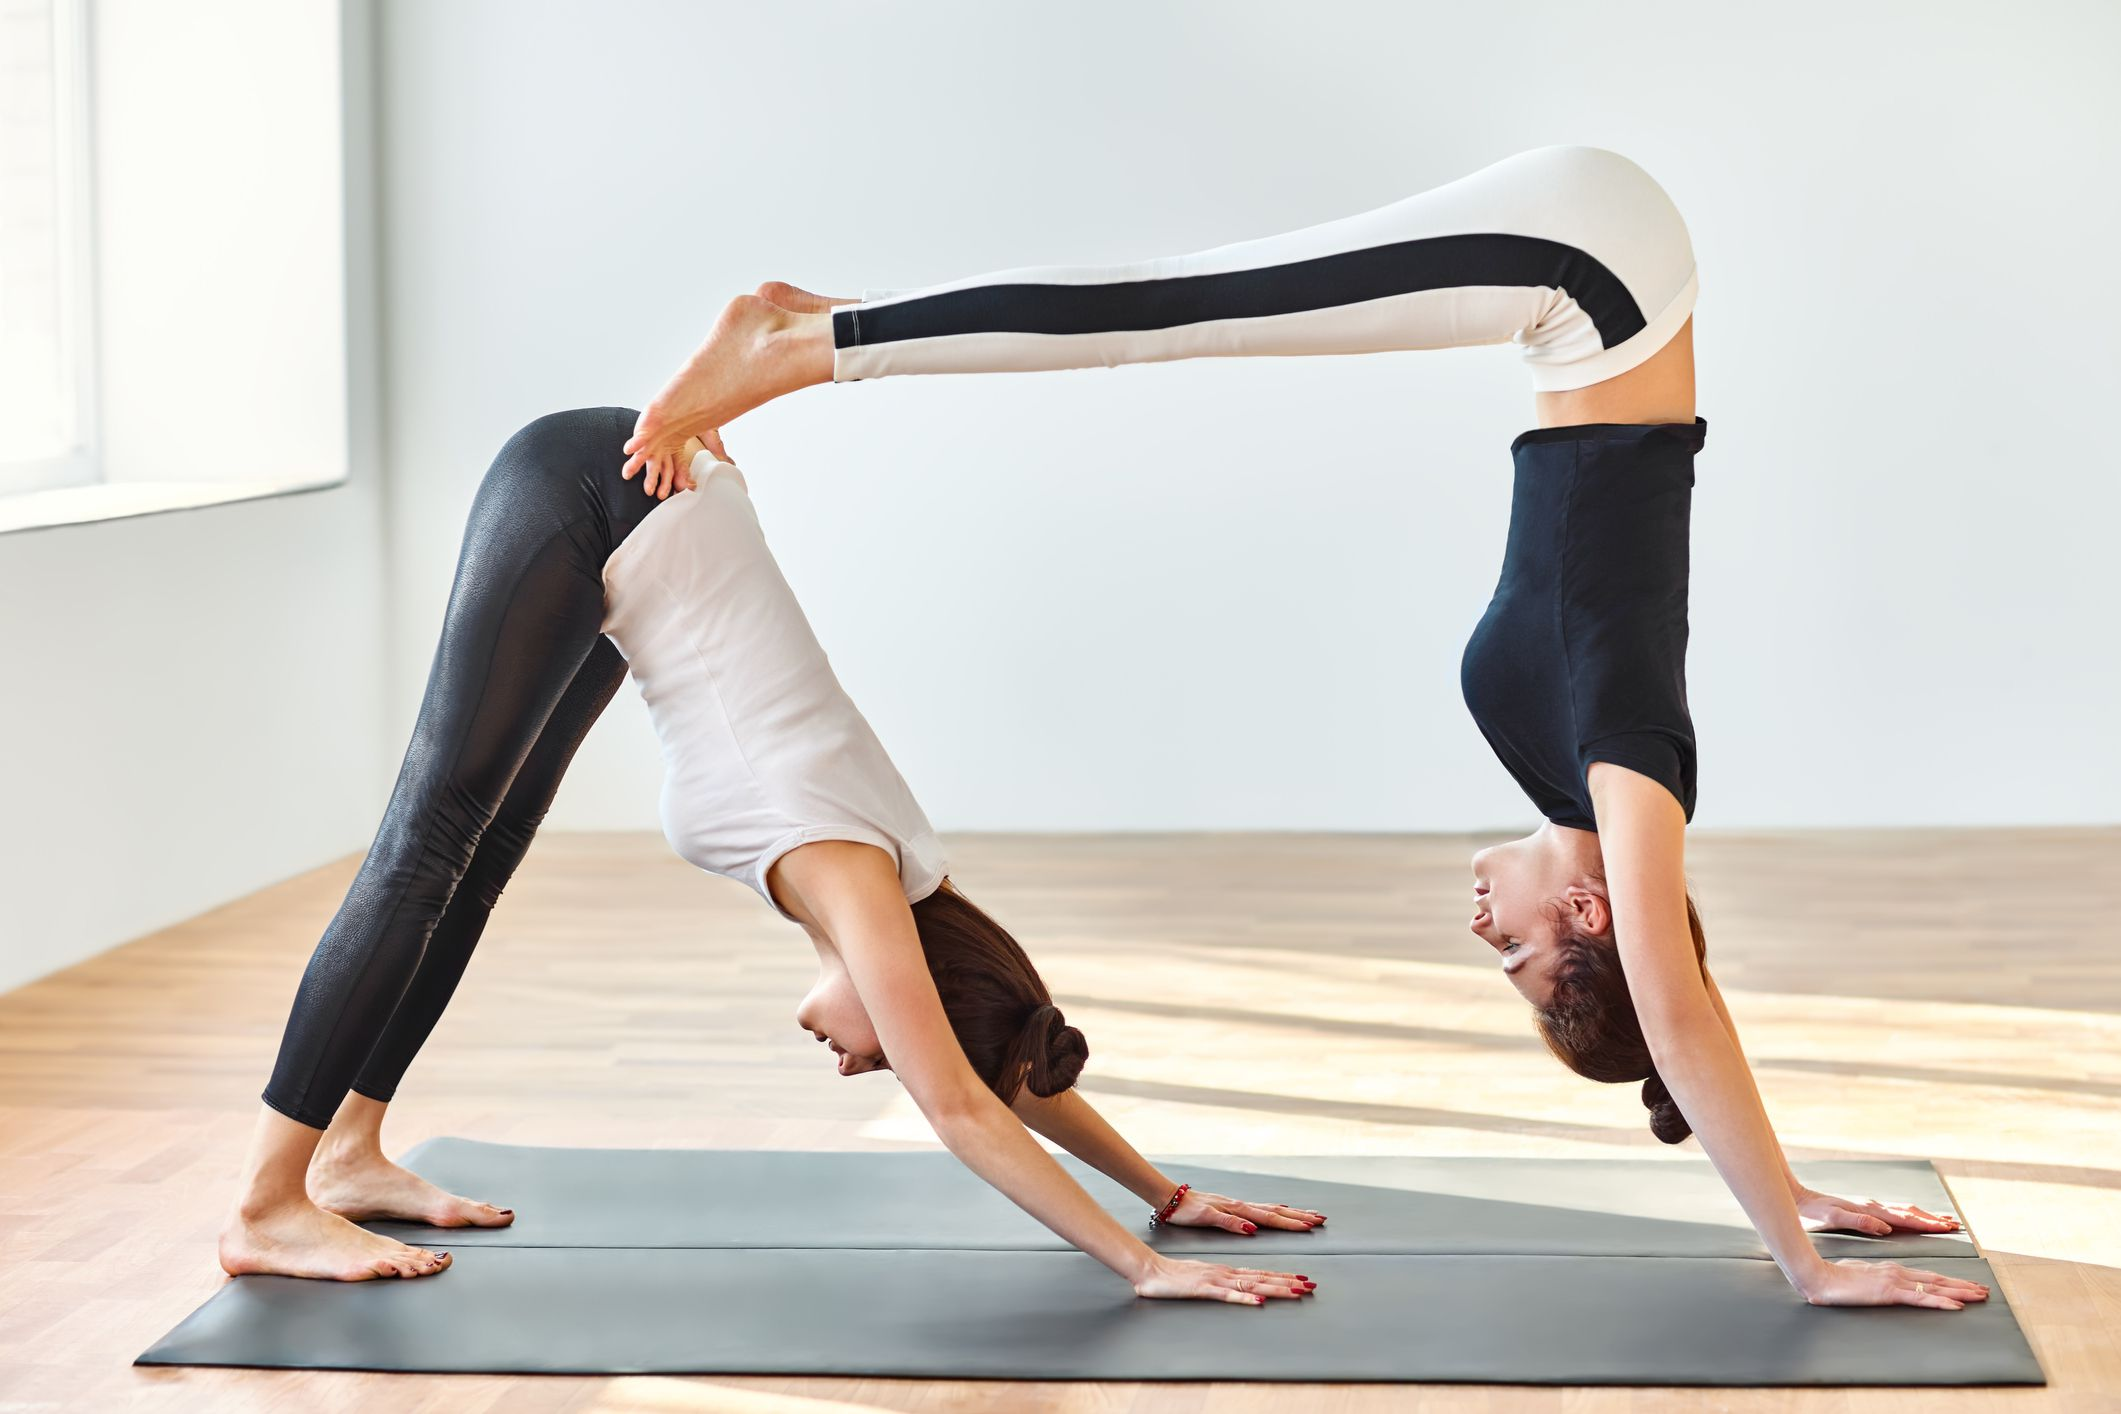 Hard Yoga Poses With Partners